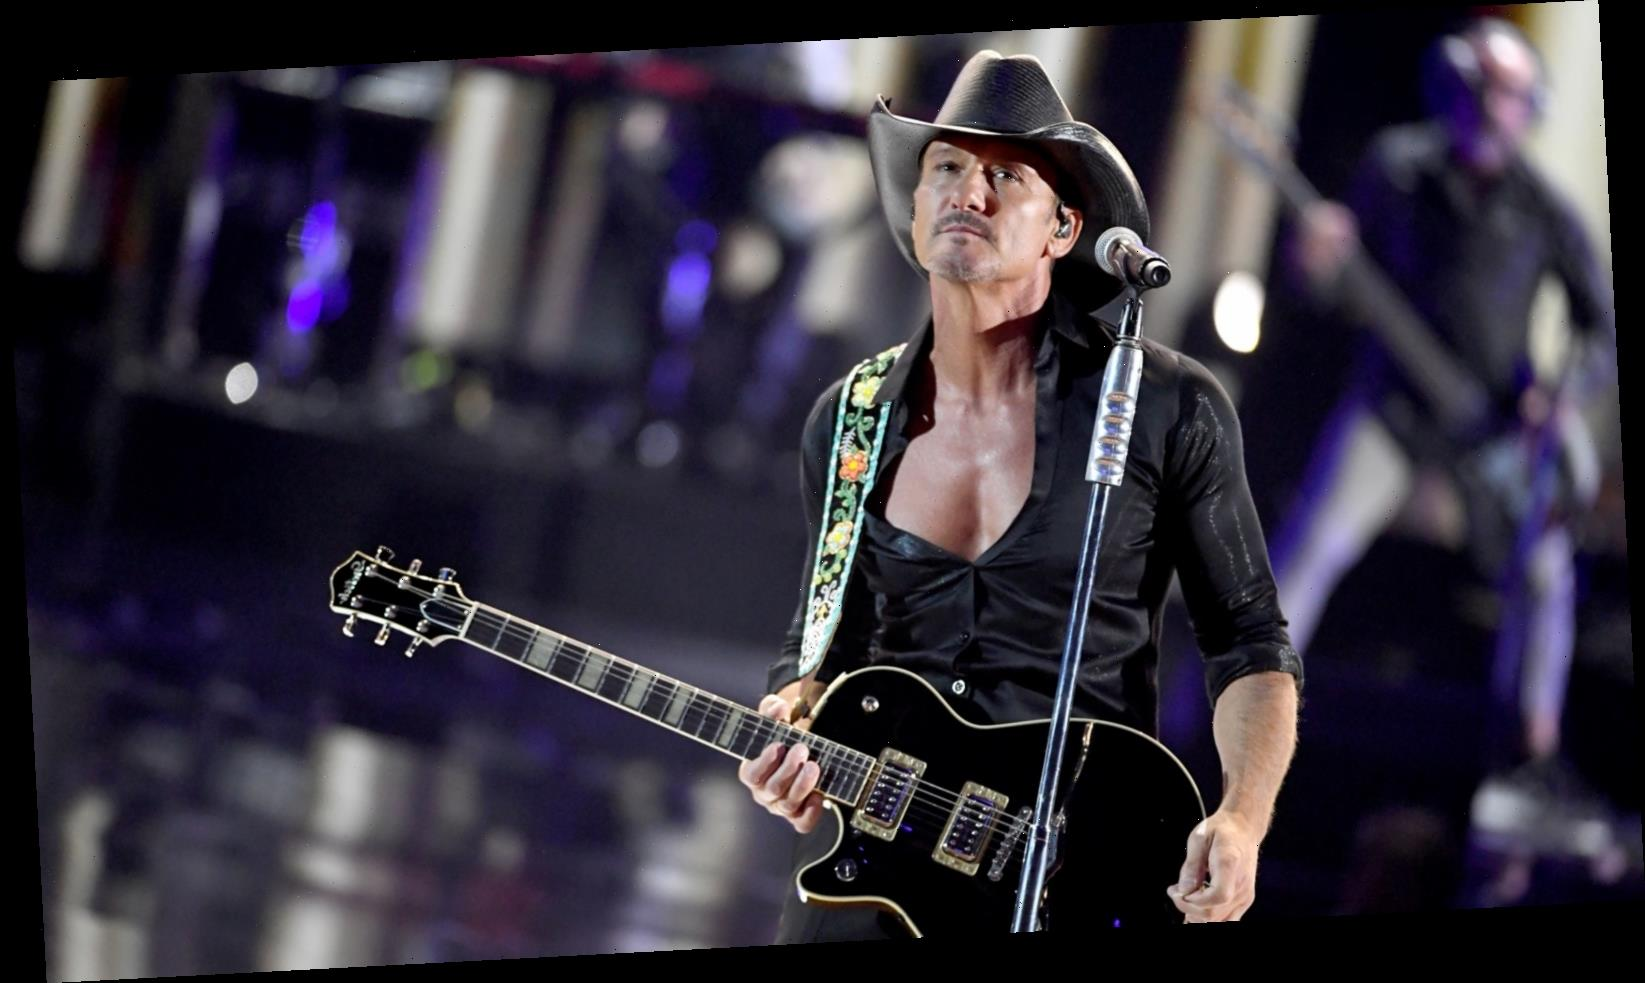 This is what made Tim McGraw want to get in shape